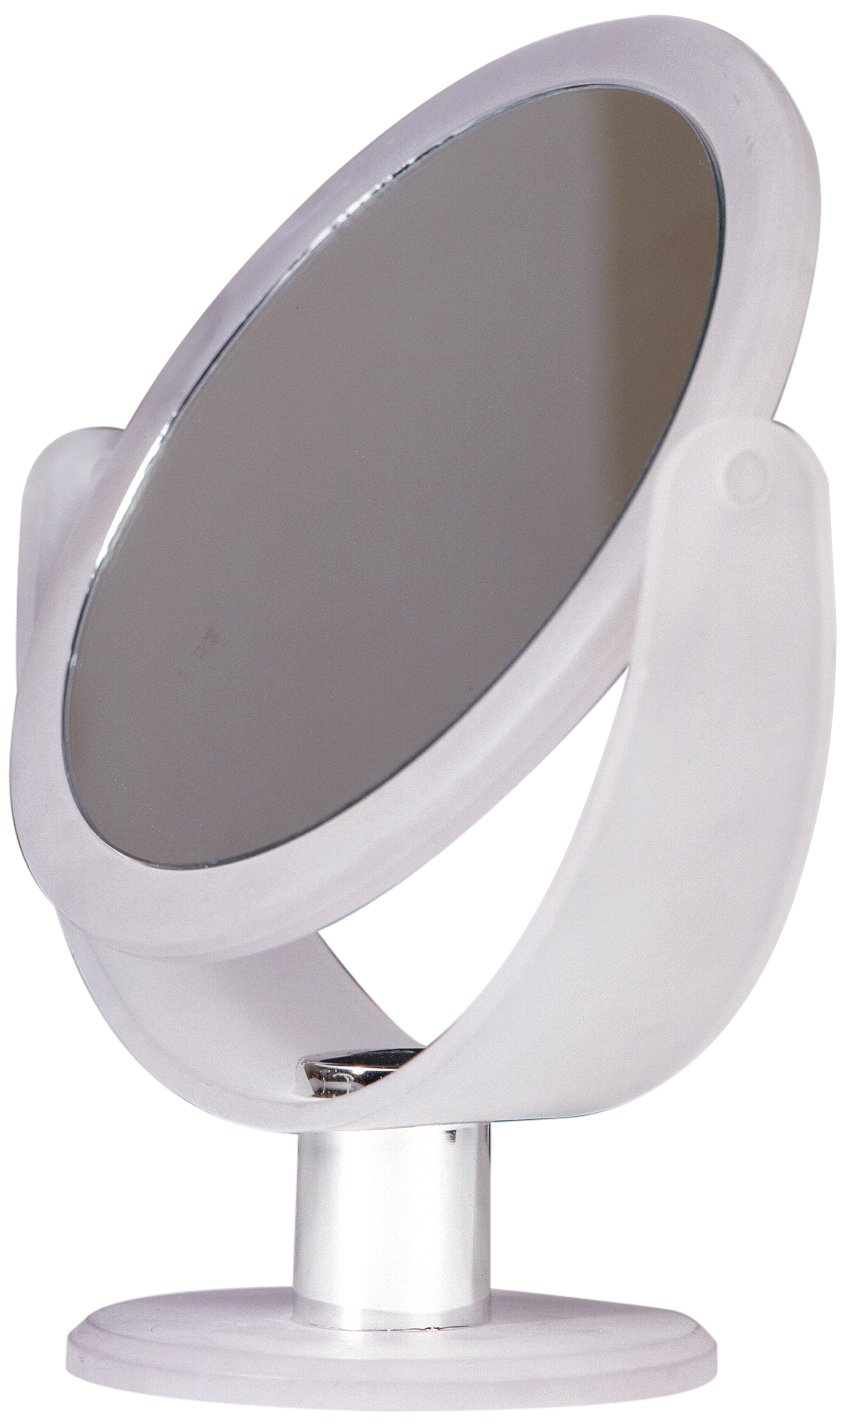 Floxite Fl-83fmw 8x Magnifying 8x 3x Vanity Mirror, Frosted White